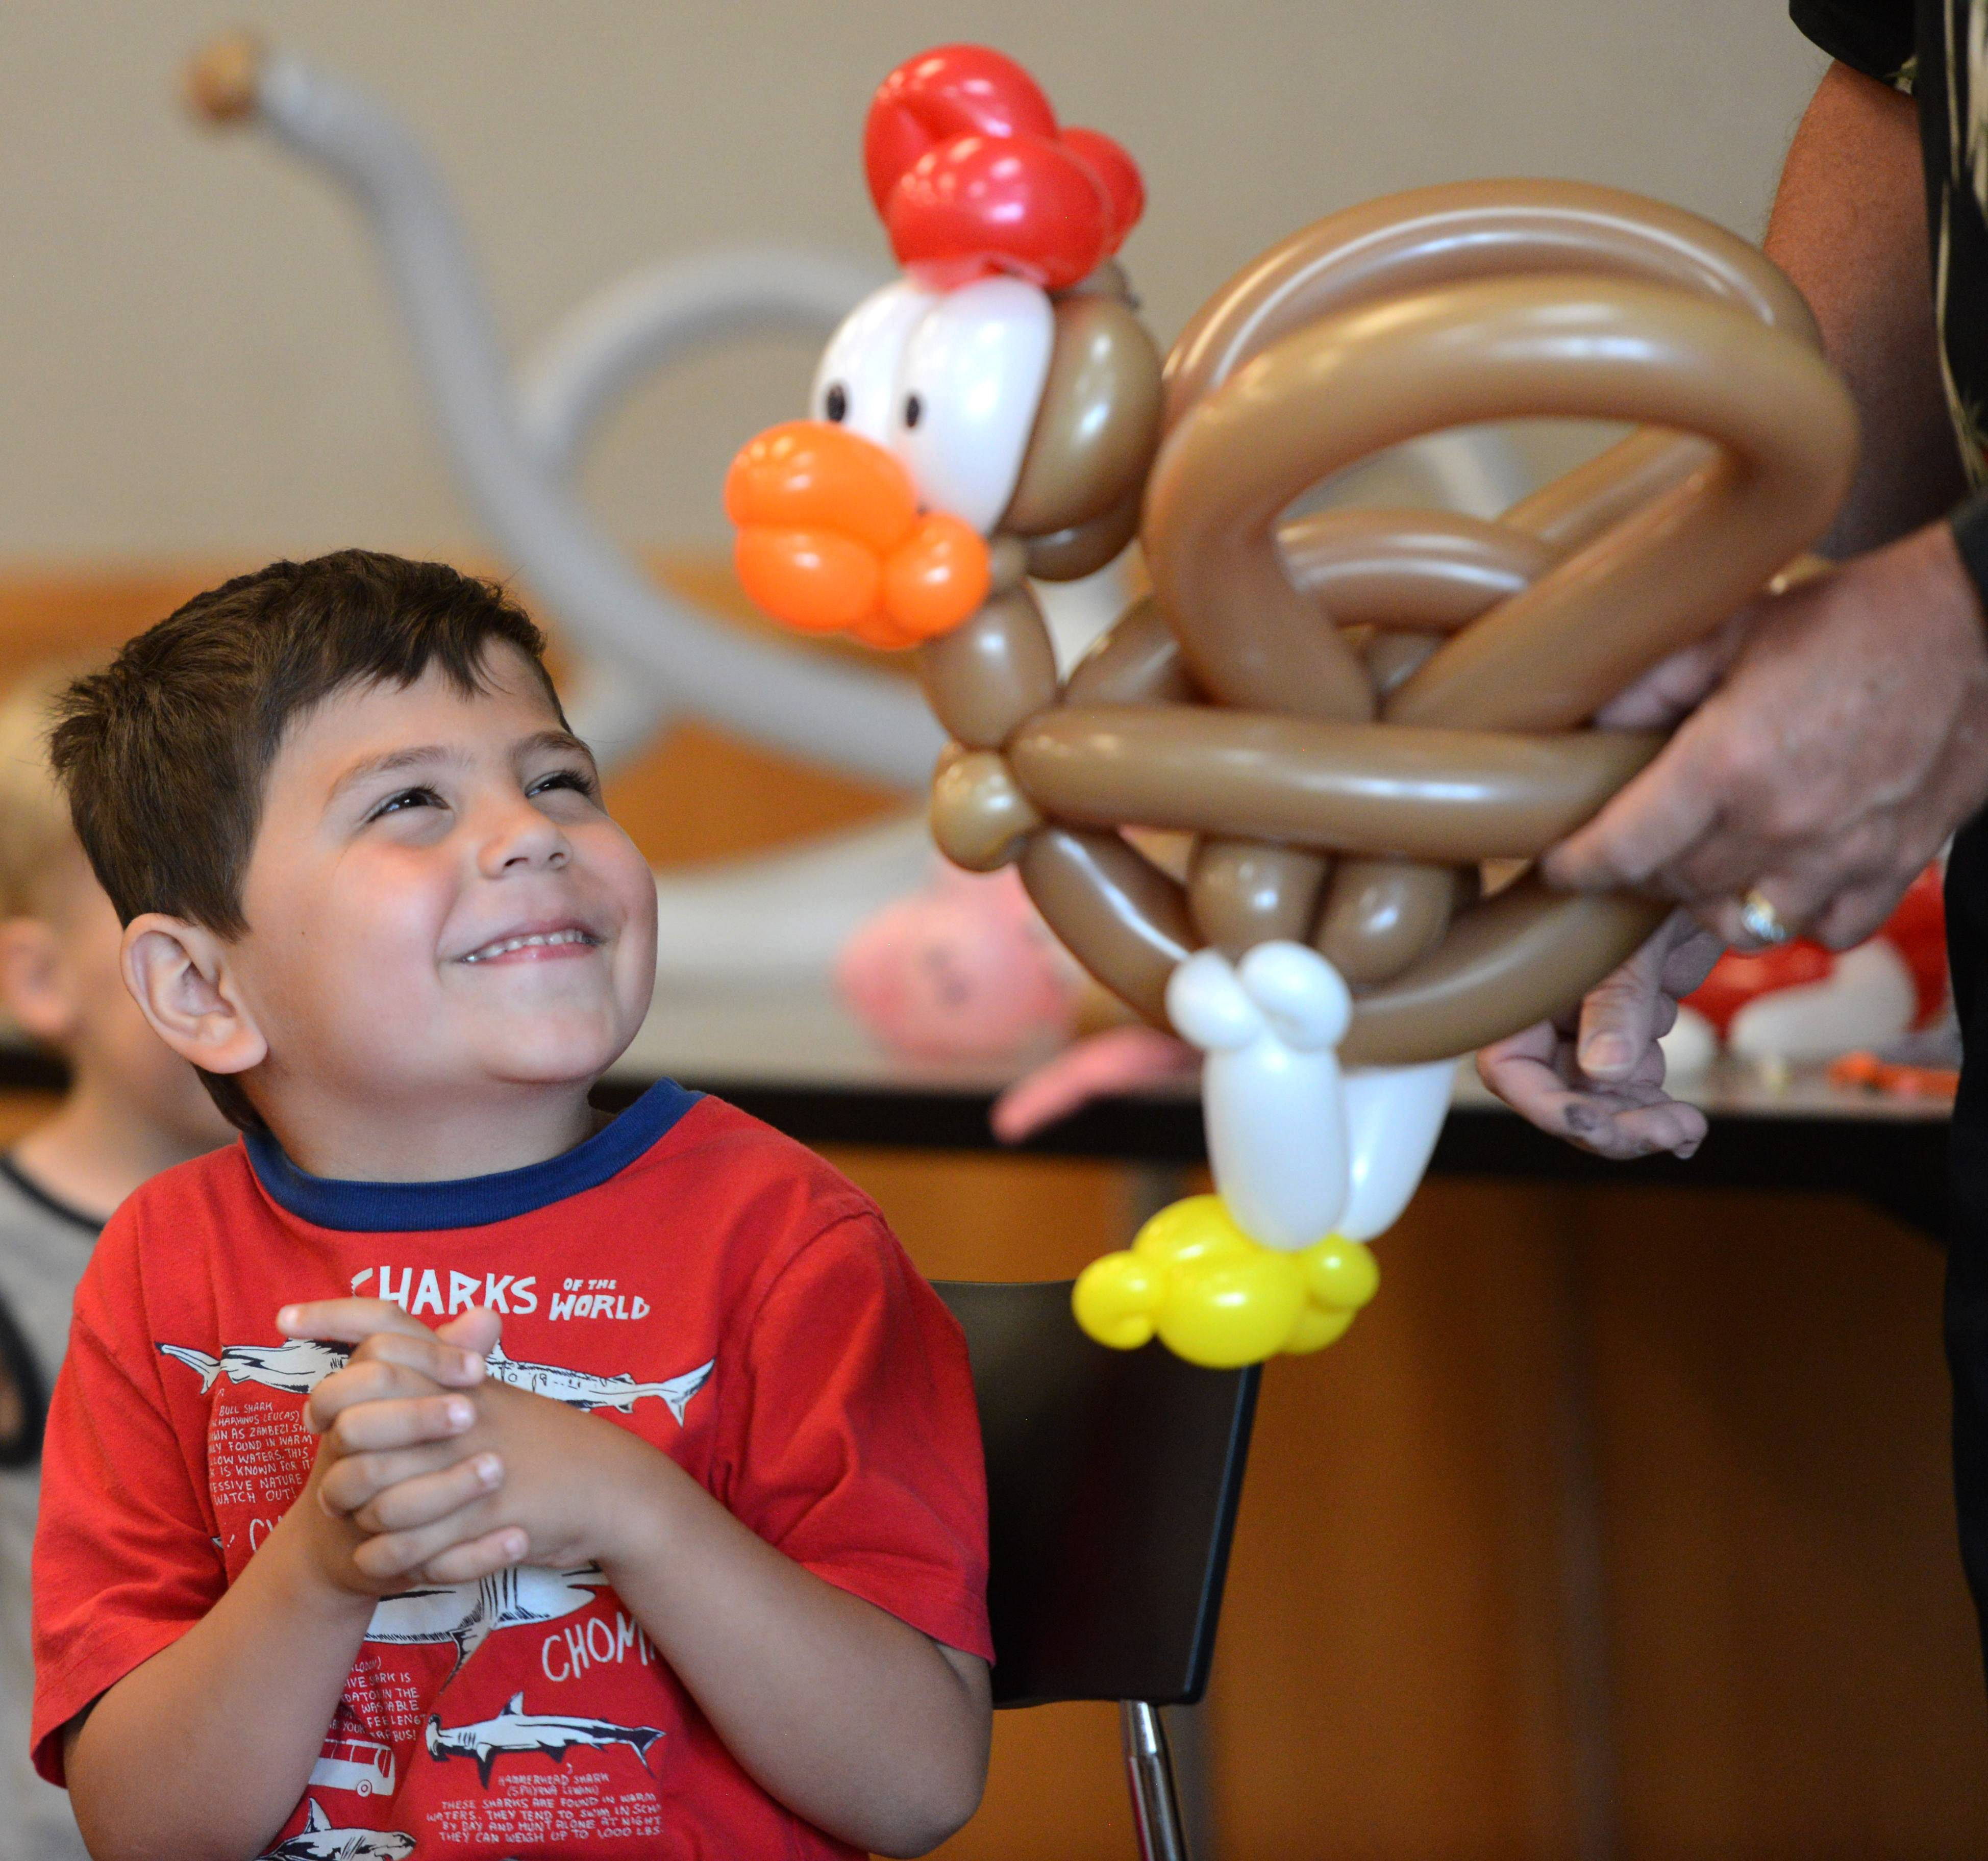 Luke Kohl, 5, of Lake Zurich beams as balloon artist Dale Obrochta shows him the rooster he created Monday during Obrochta's improvisational balloon show at the Ela Area Public Library in Lake Zurich.